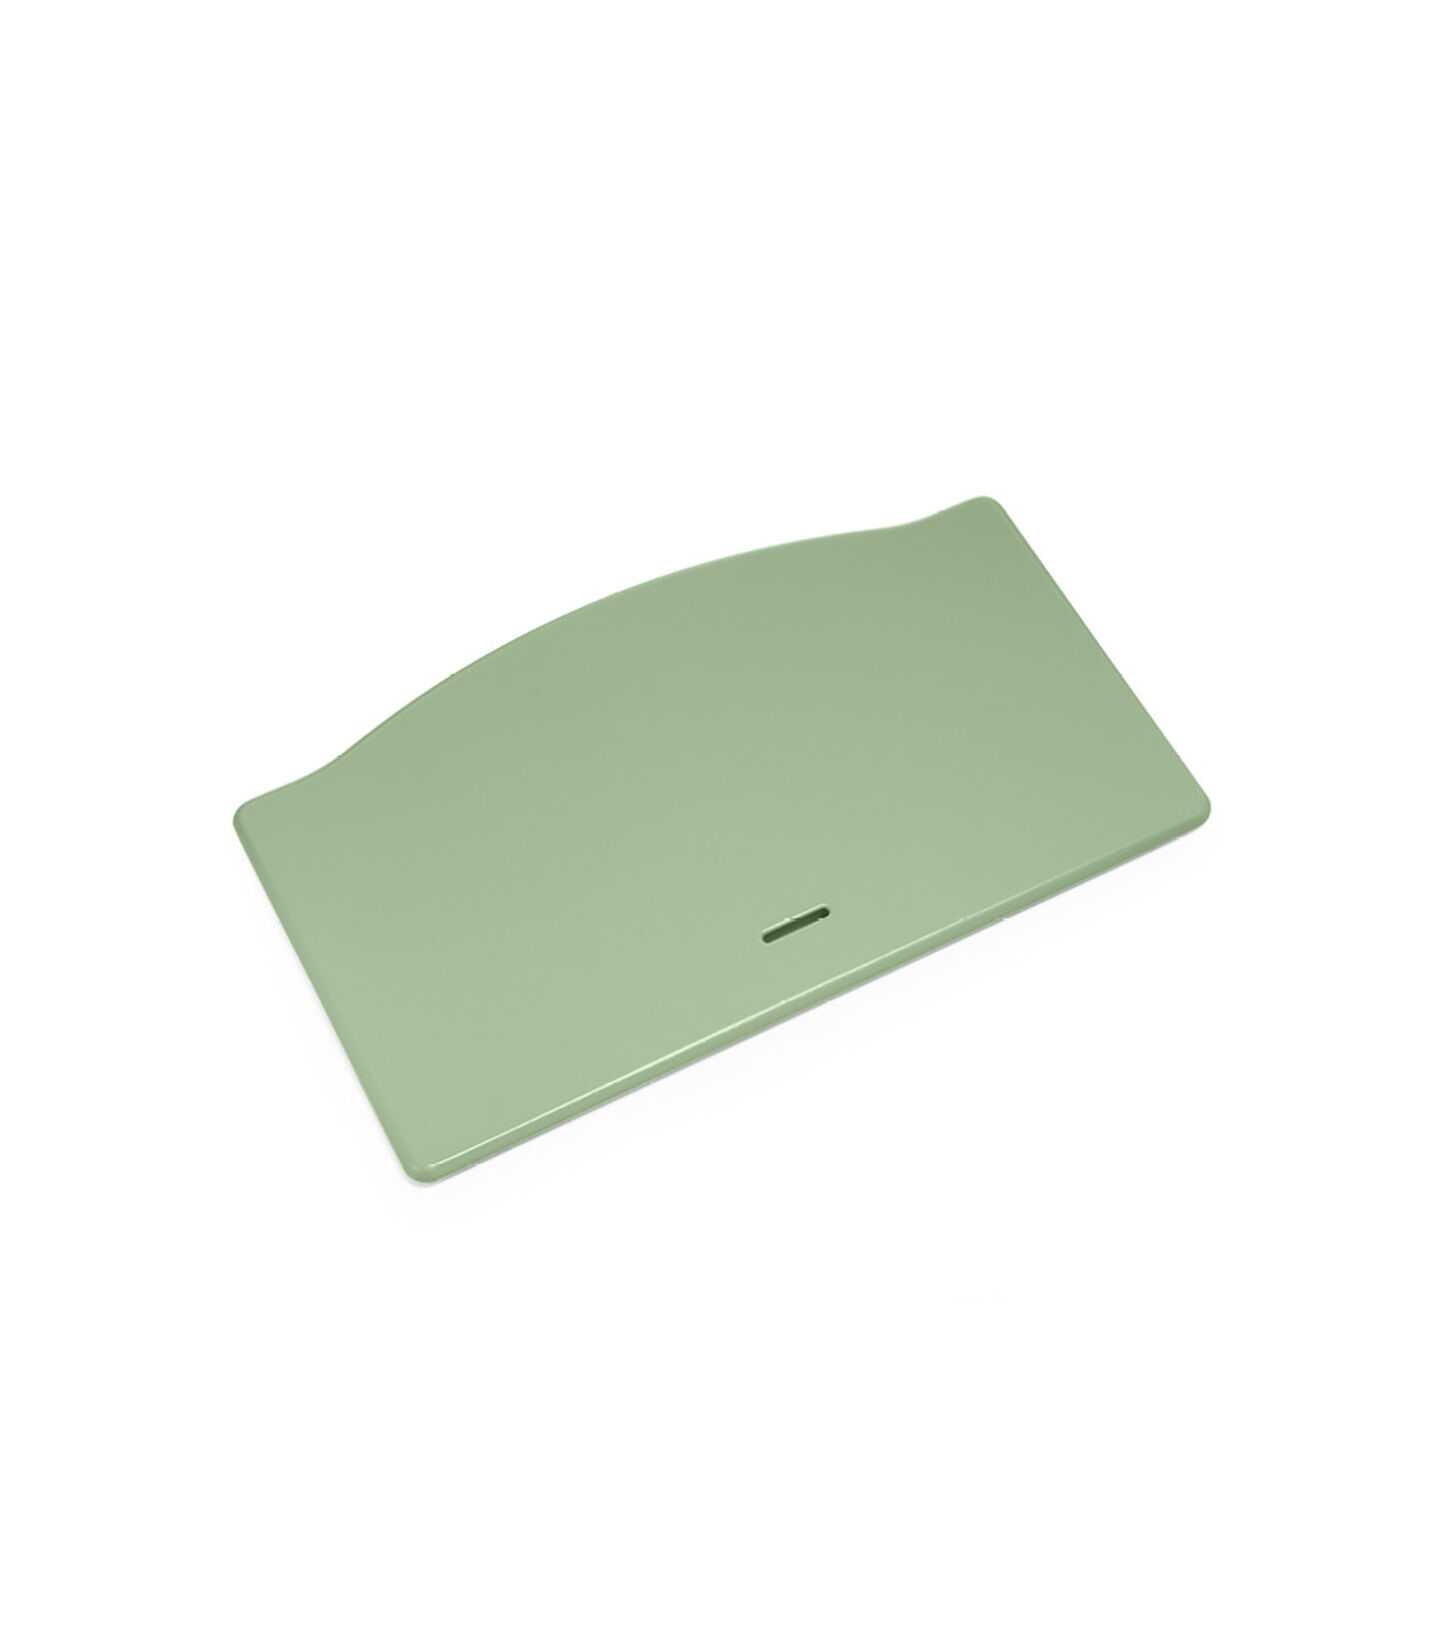 Tripp Trapp® Seatplate Moss Green, Moss Green, mainview view 2